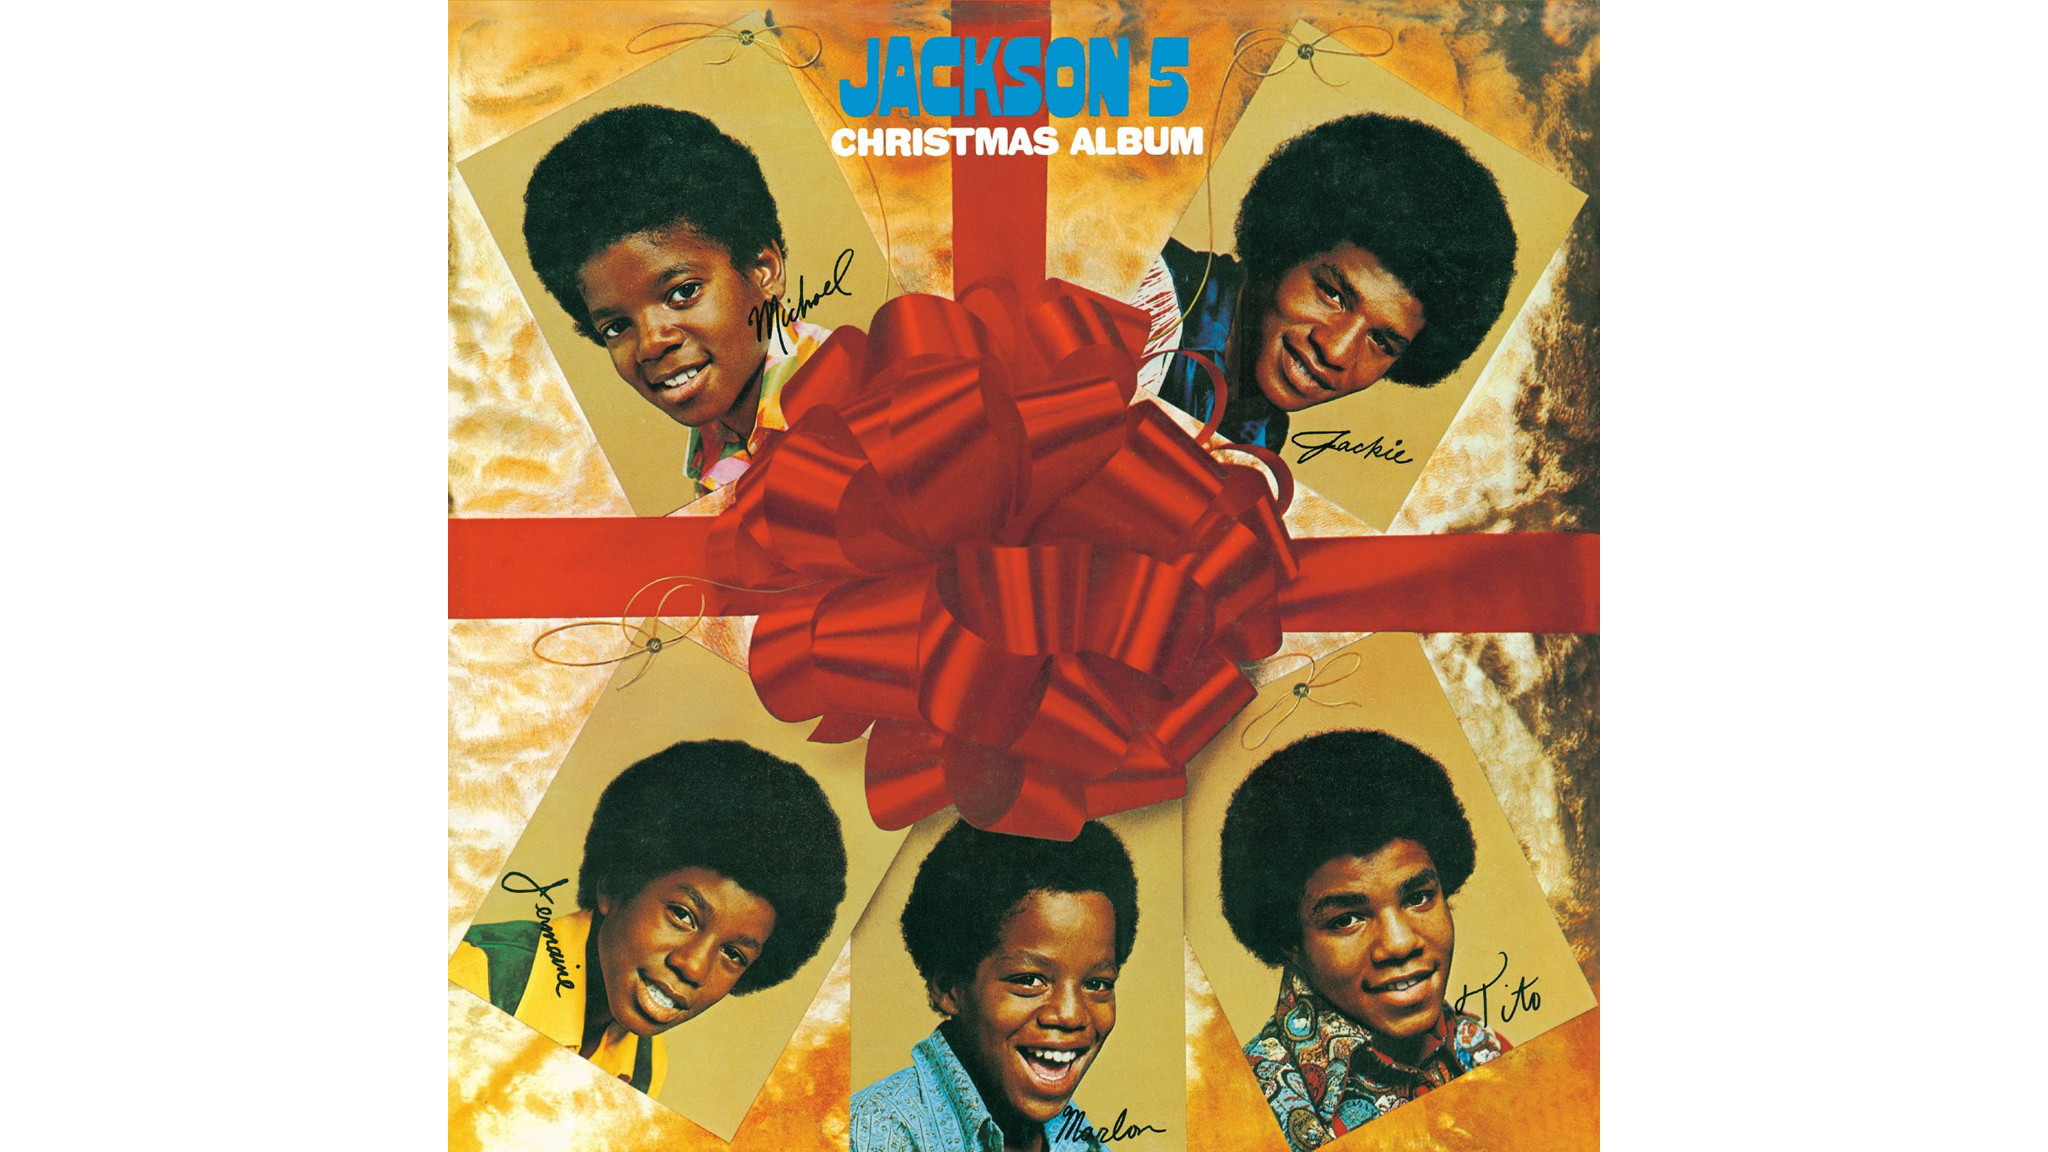 Jackson 5 – 'Santa Claus is Coming to Town' cover art